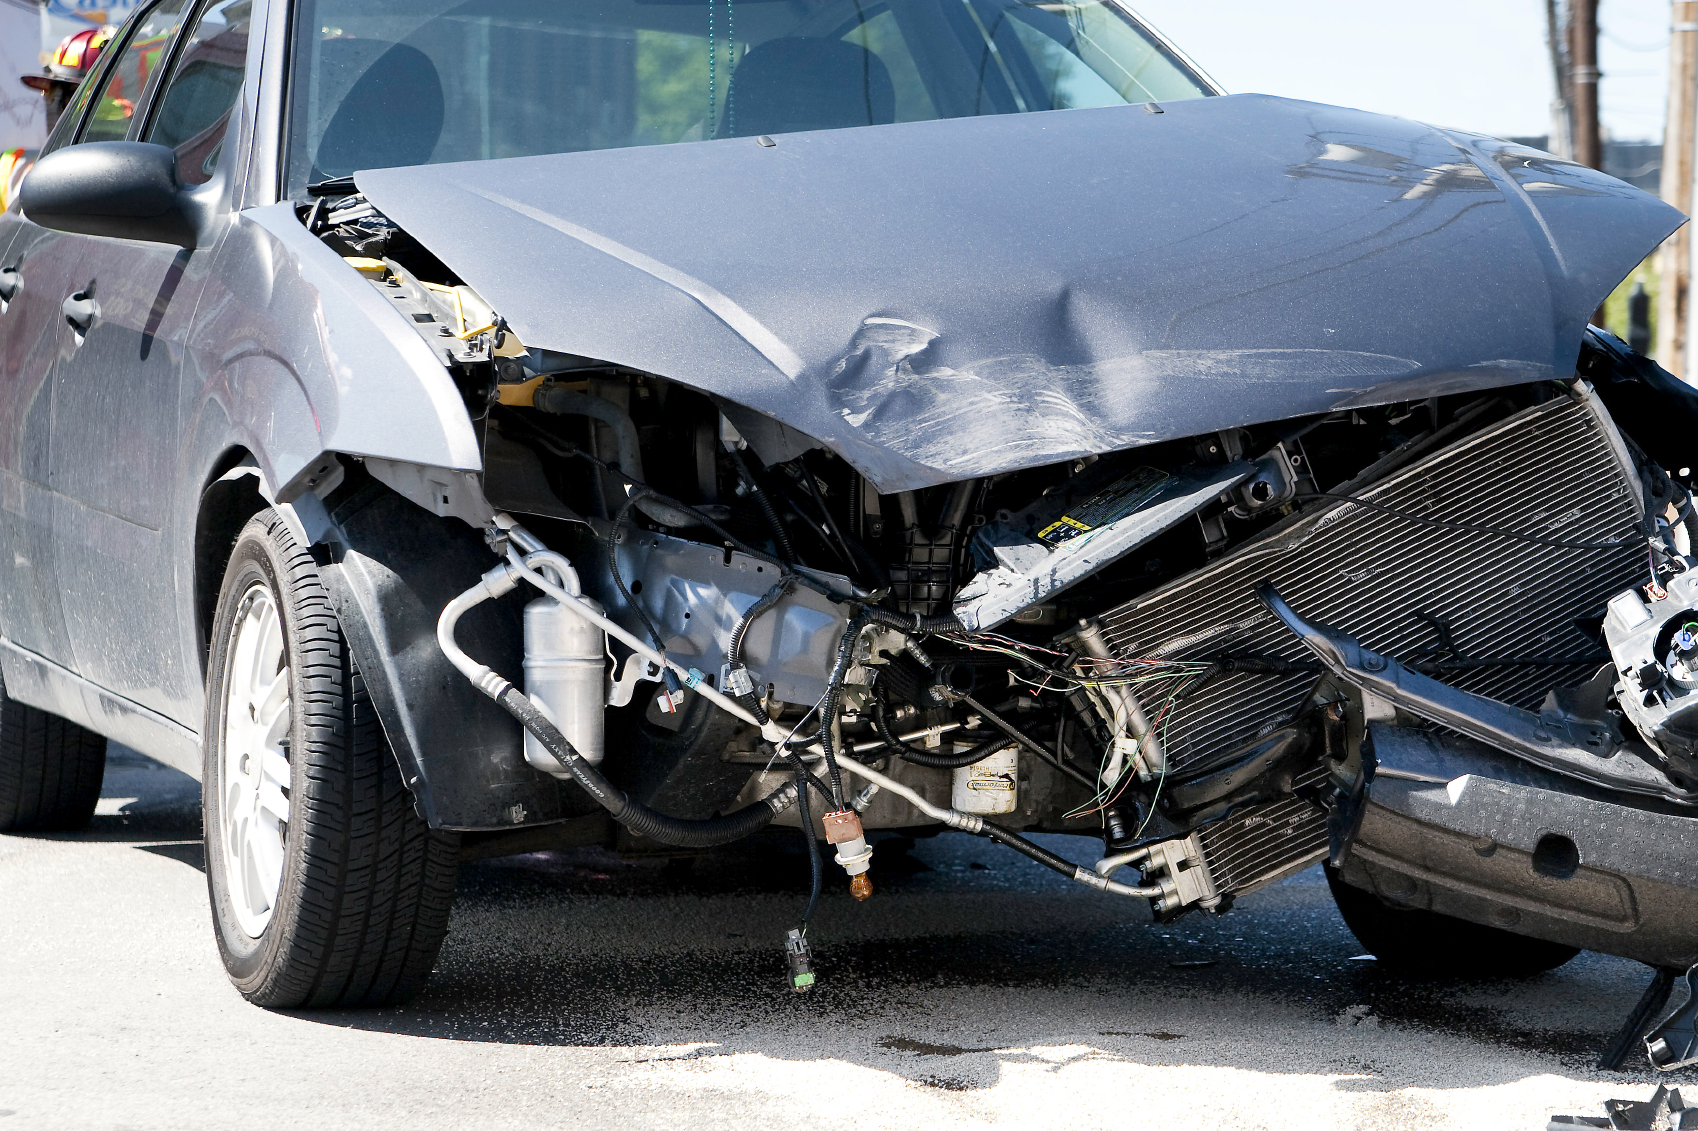 What To Expect From Your Smyrna Auto Accident Attorney. Realself Tattoo Removal Baby Vomiting Formula. Axis Security Camera Systems. Potential Renal Acid Load Tesol Course Online. Online Computer Back Up Html5 App Development. Title Loans Murfreesboro Tn Litvin Law Firm. Laptops For College Students Free. Home Health Agencies In Palm Beach County. Social Worker Schools In California